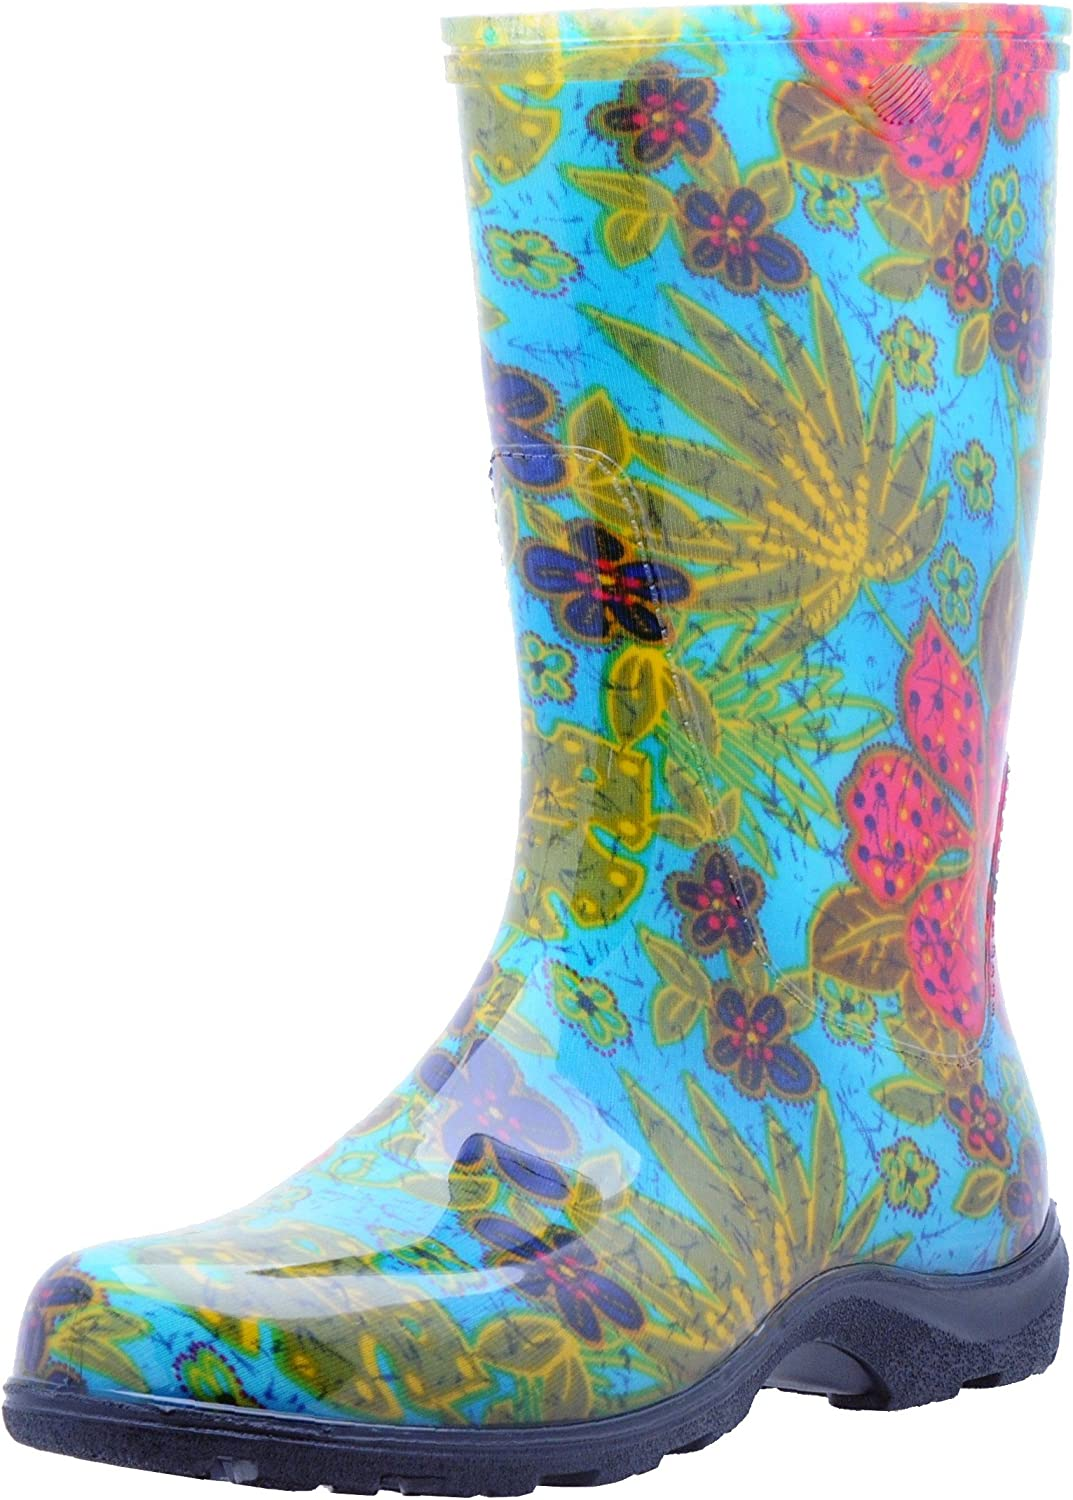 Principle Plastics Sloggers Women's Rain and Garden Boot with All-Day-Comfort Insole, Midsummer bluee Print-Wo's Size 7-Style 5002BL07